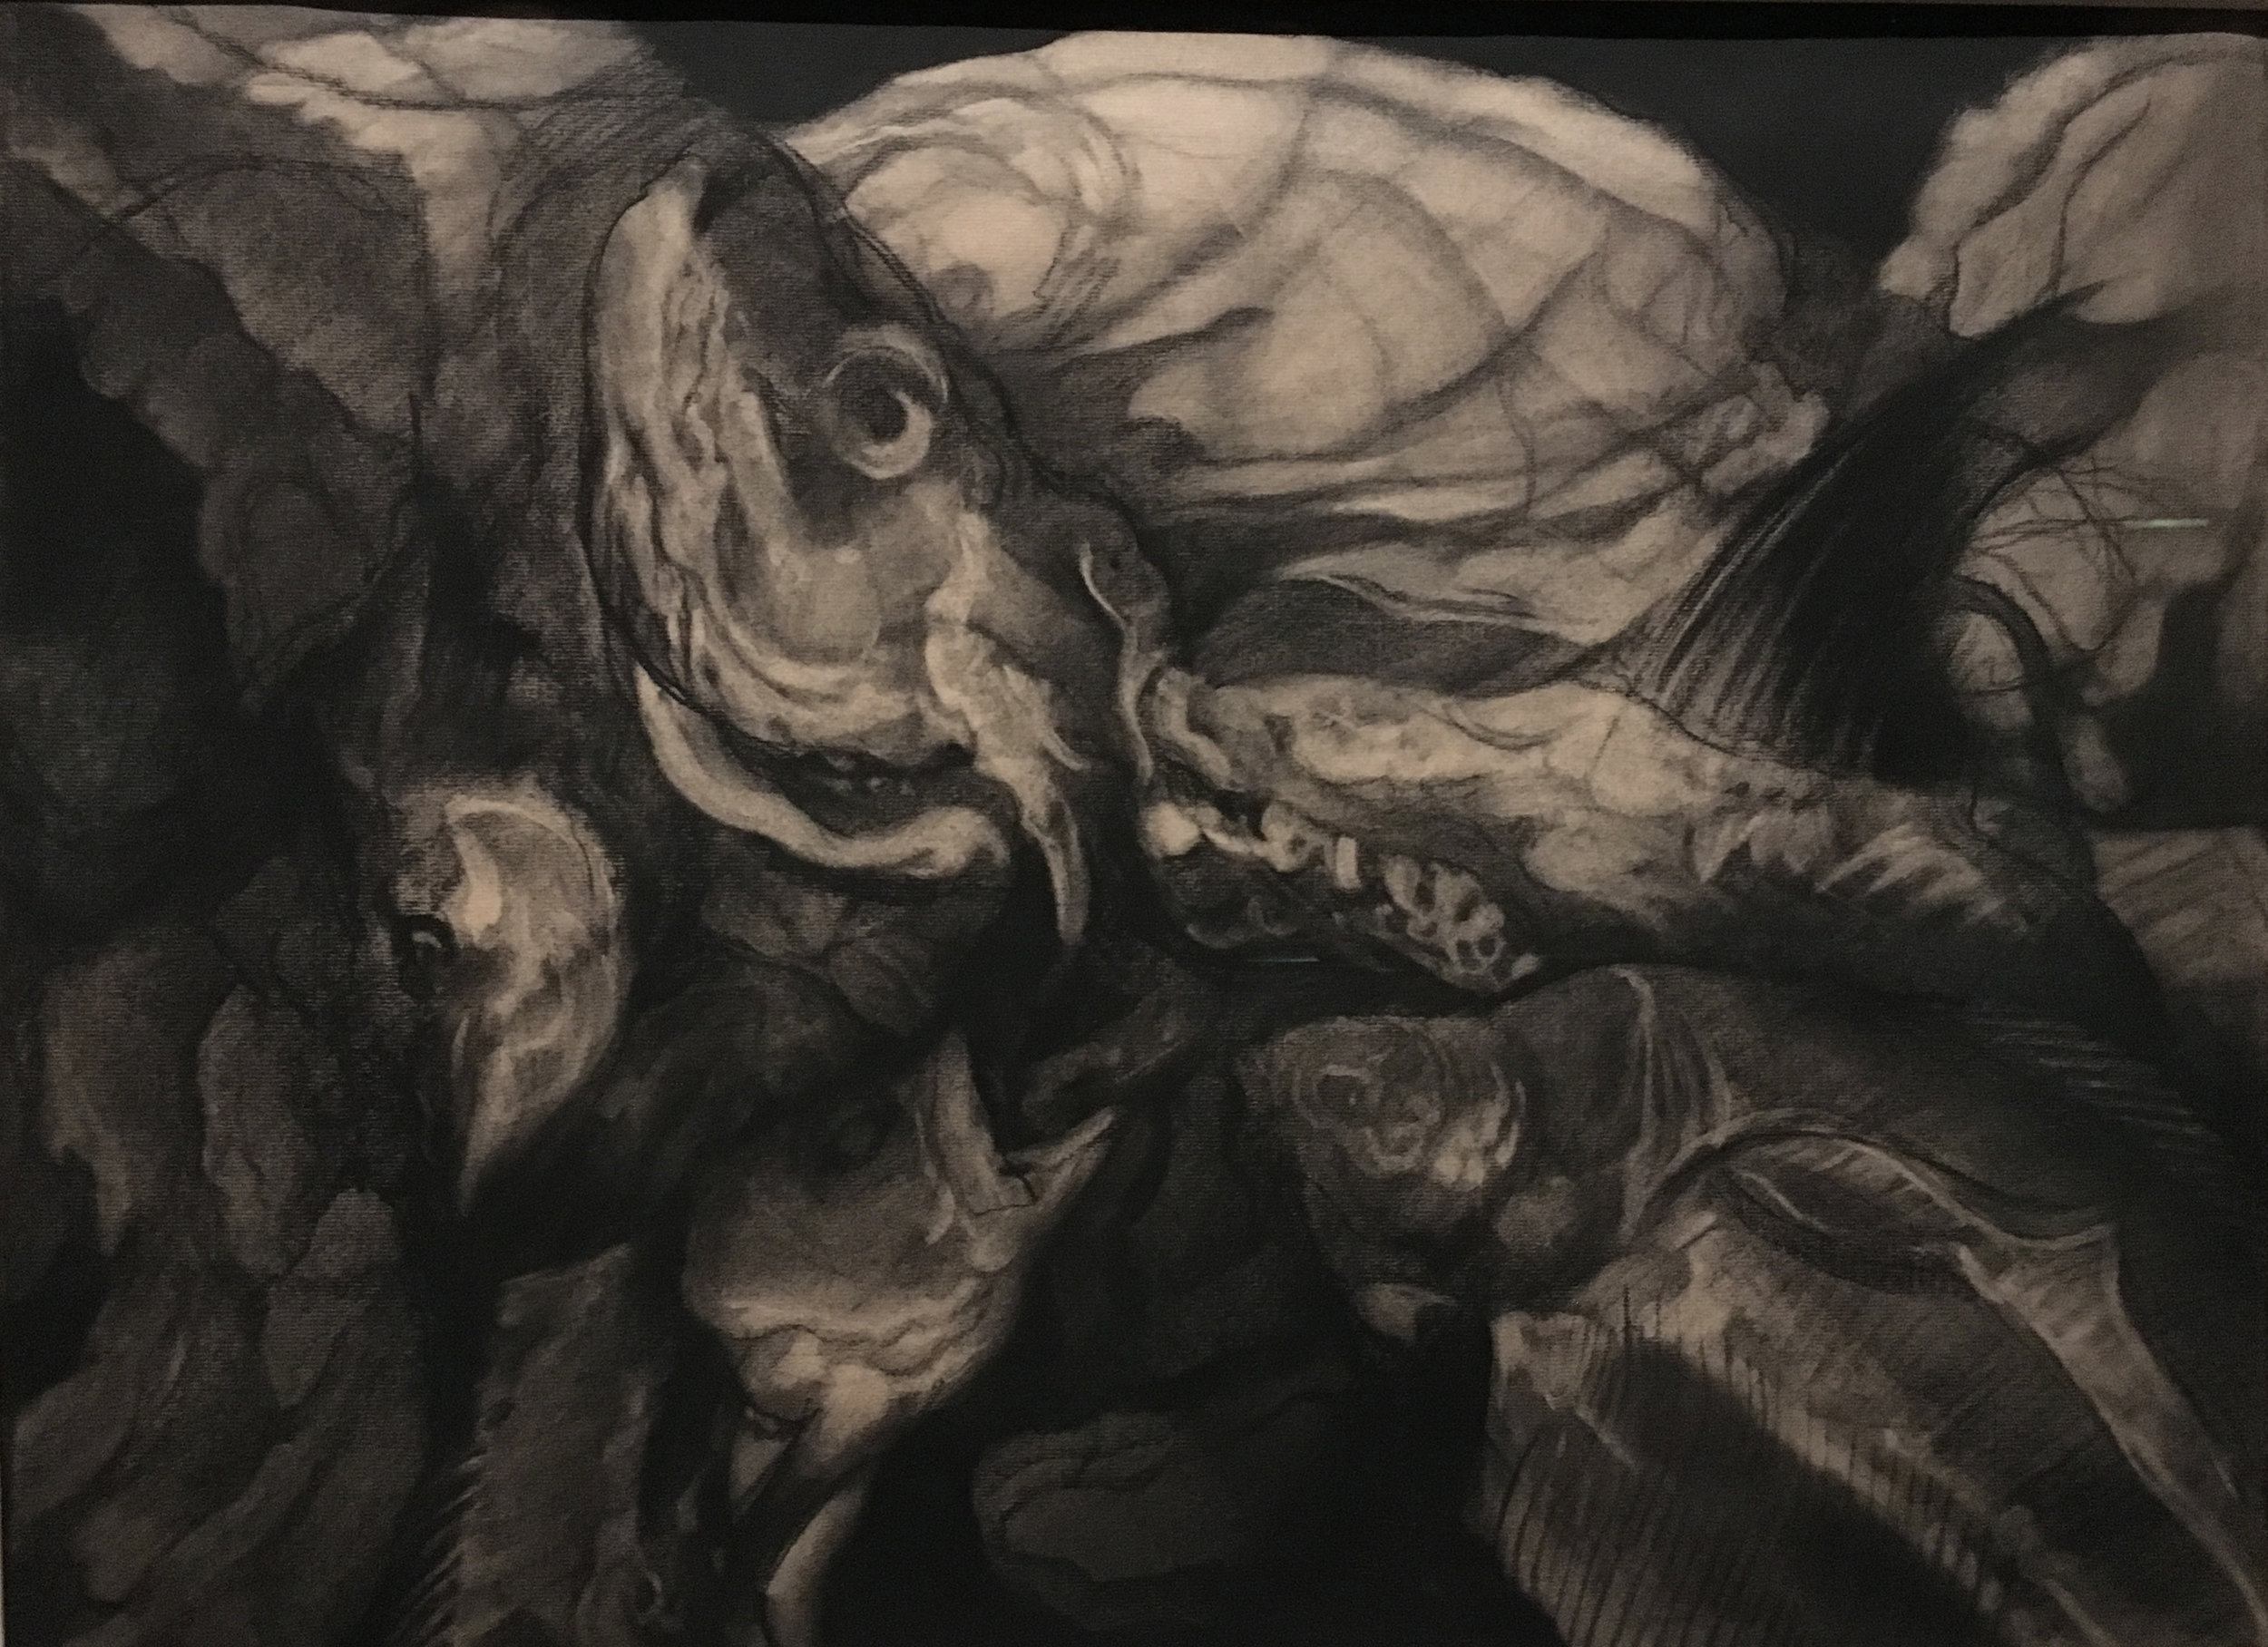 Fish, Still Life, 1953, charcoal on paper, Hyman Bloom (Photograph J.Cook)